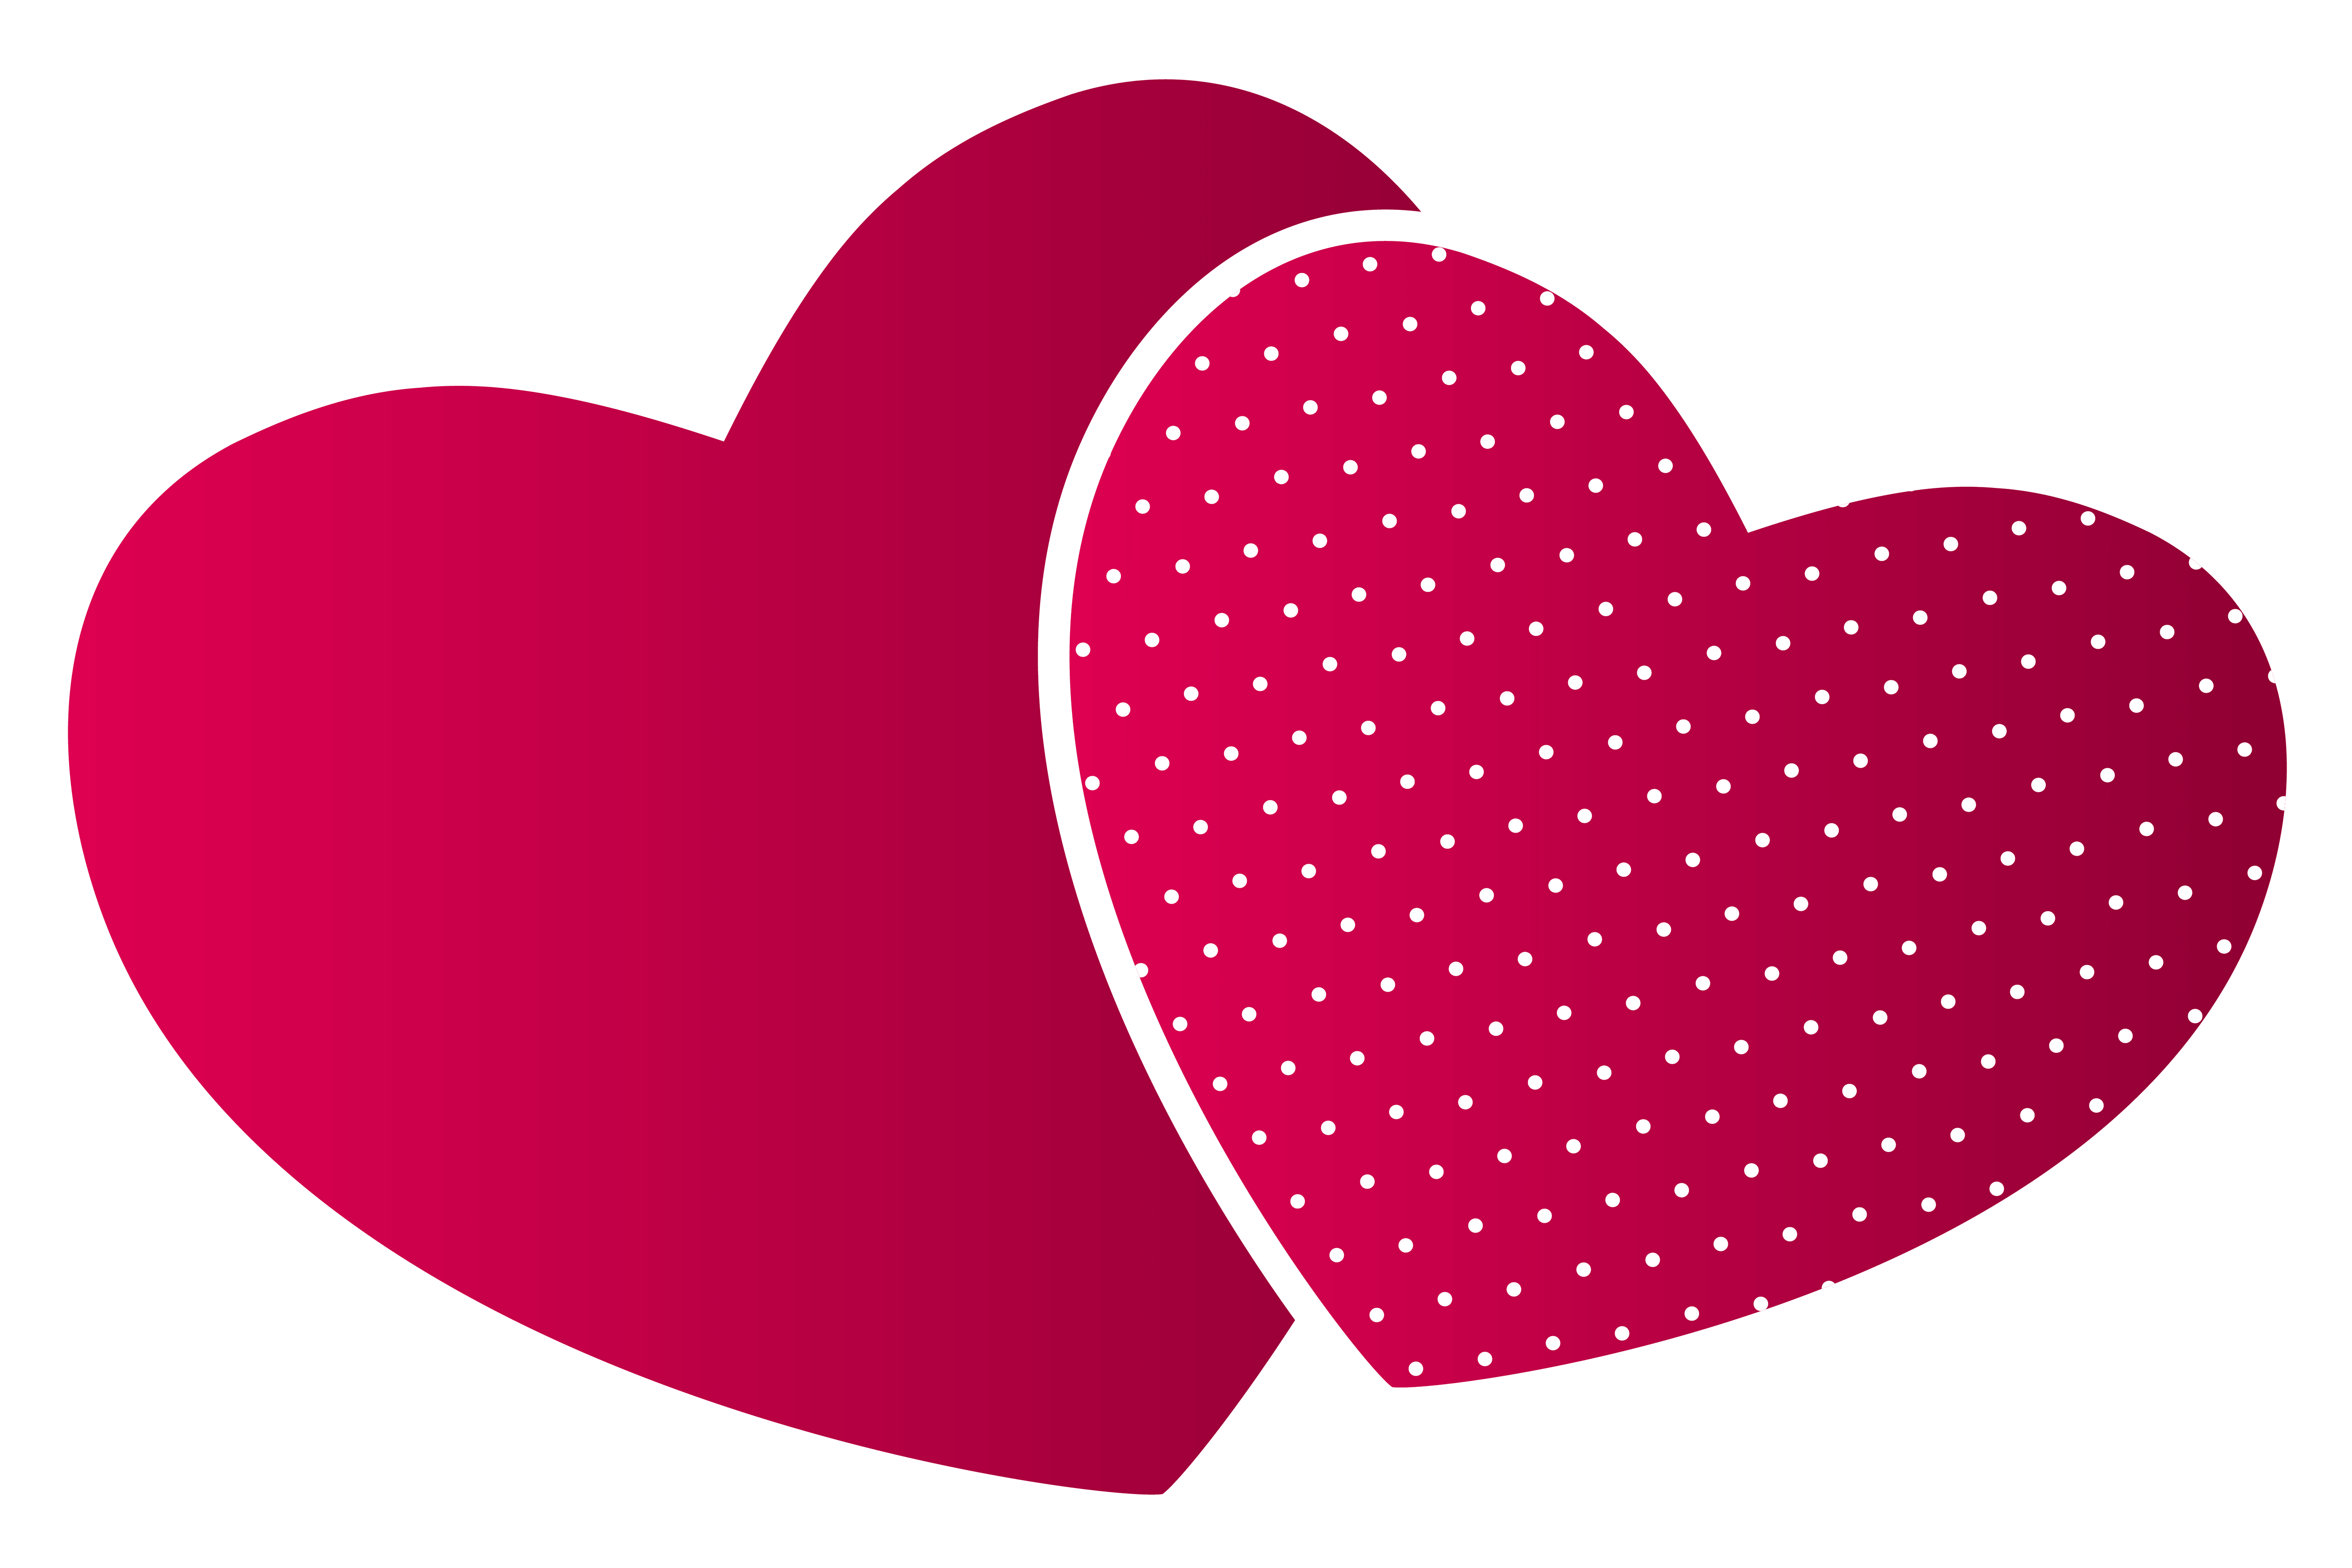 Double hearts png.